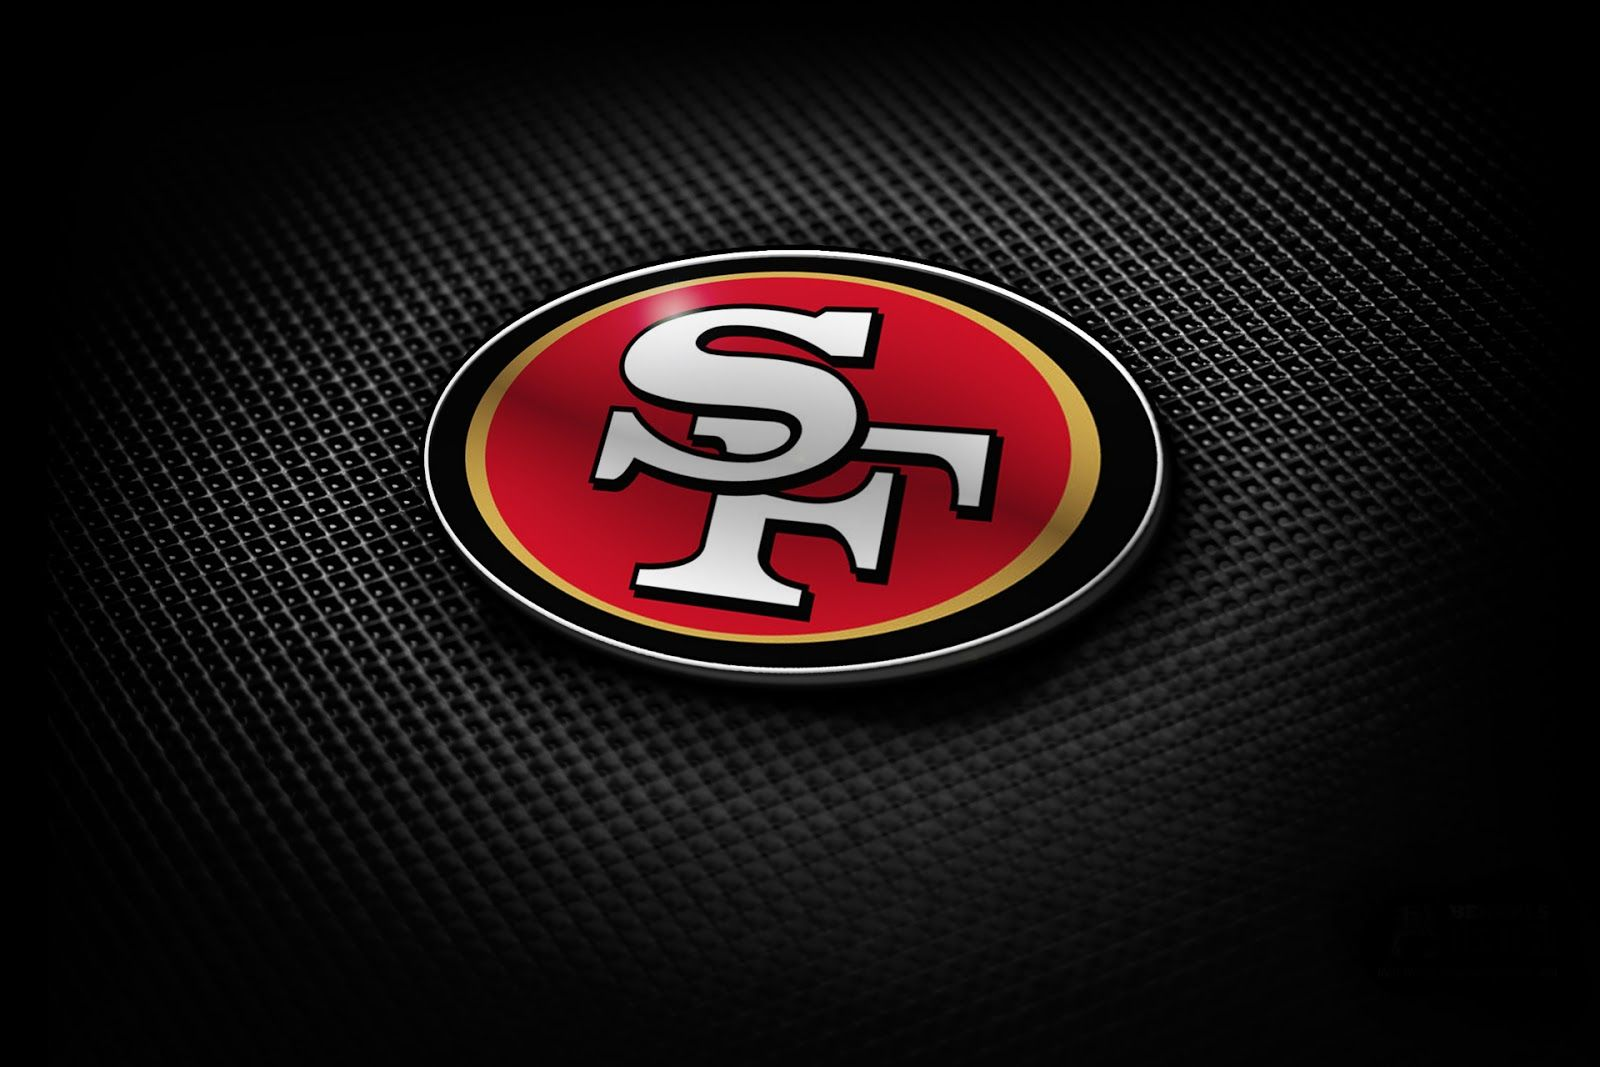 49ers Logos Wallpapers WallpaperPulse Images